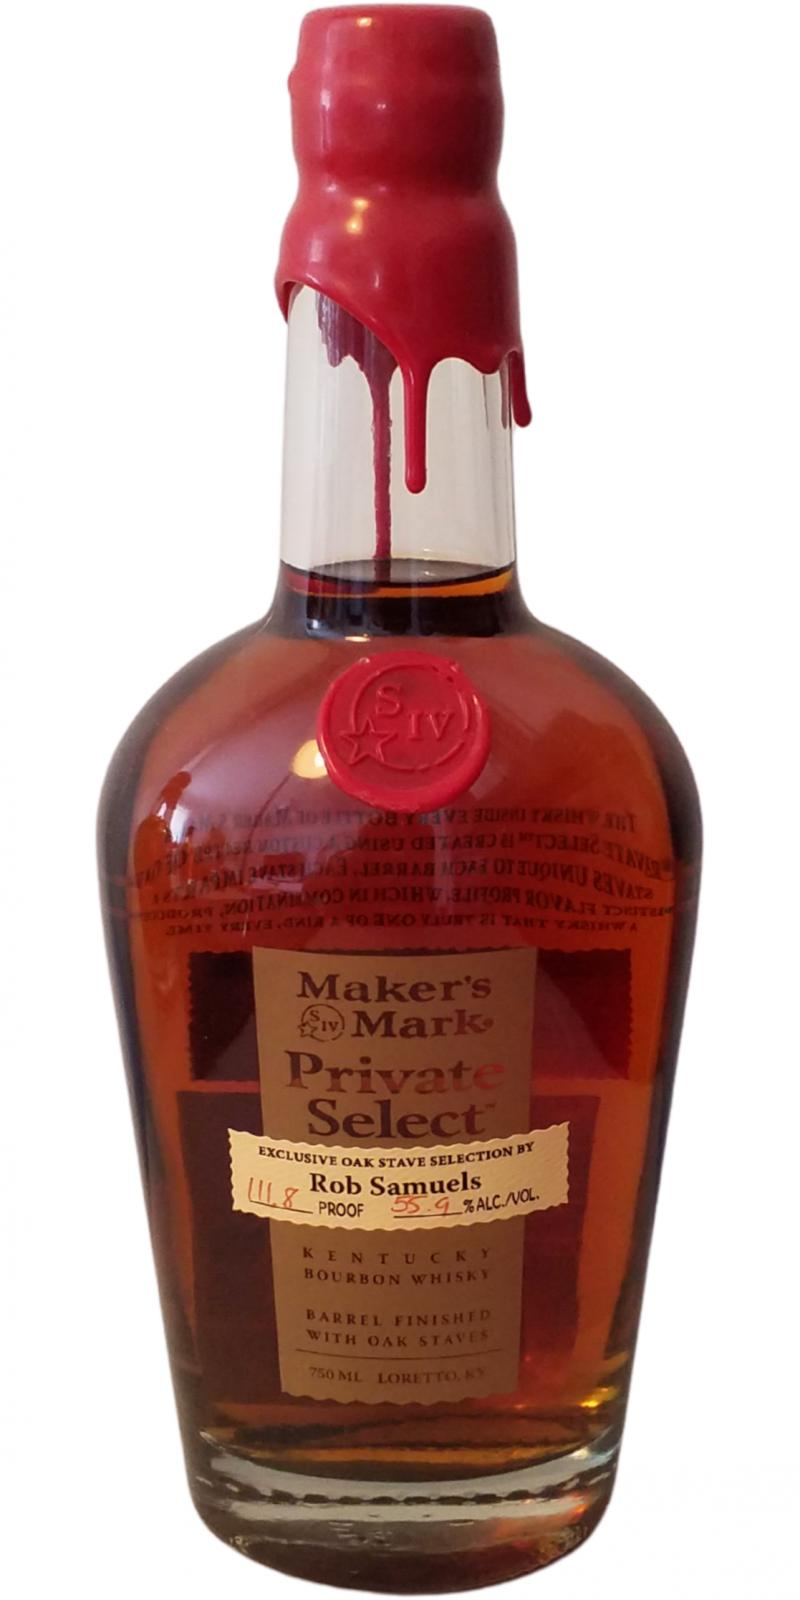 Maker's Mark Rob Samuels Private Select